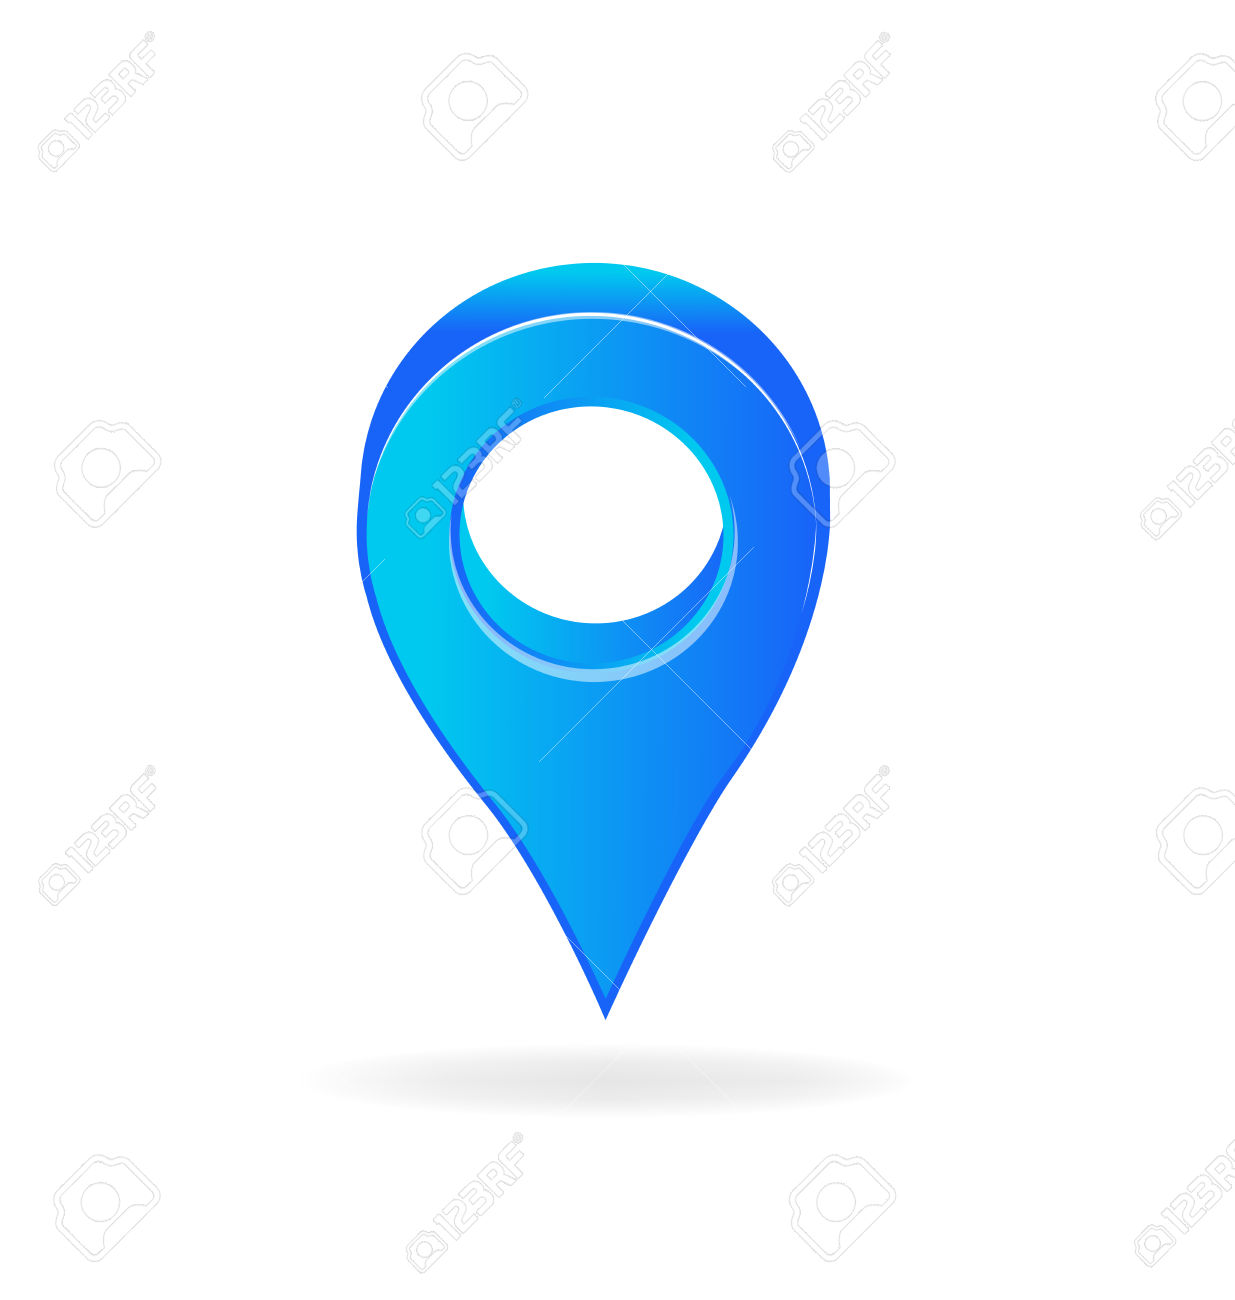 3D Map Pointer. Destination Gps Symbol Image Royalty Free Cliparts.